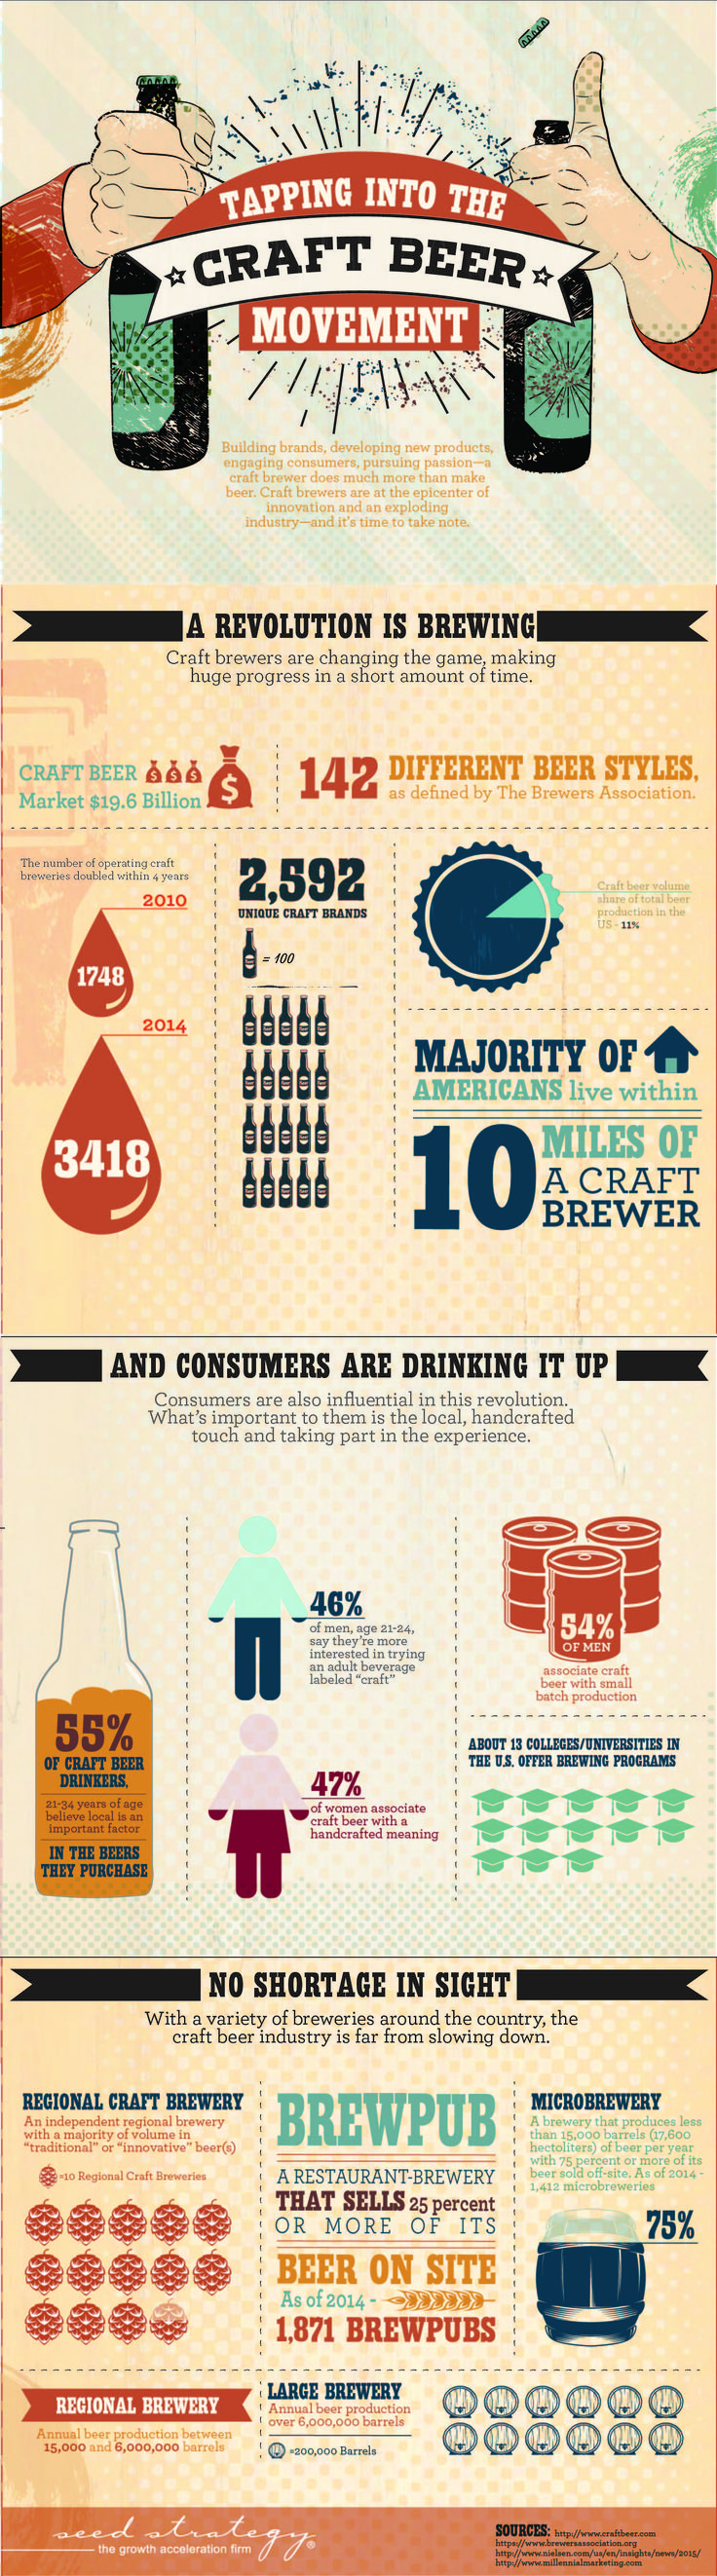 We all know craft beer is a budding industry, but do you know the extent of its growth? Today's infographic breaks down the numerical growth of the industry and why it is becoming so popular.